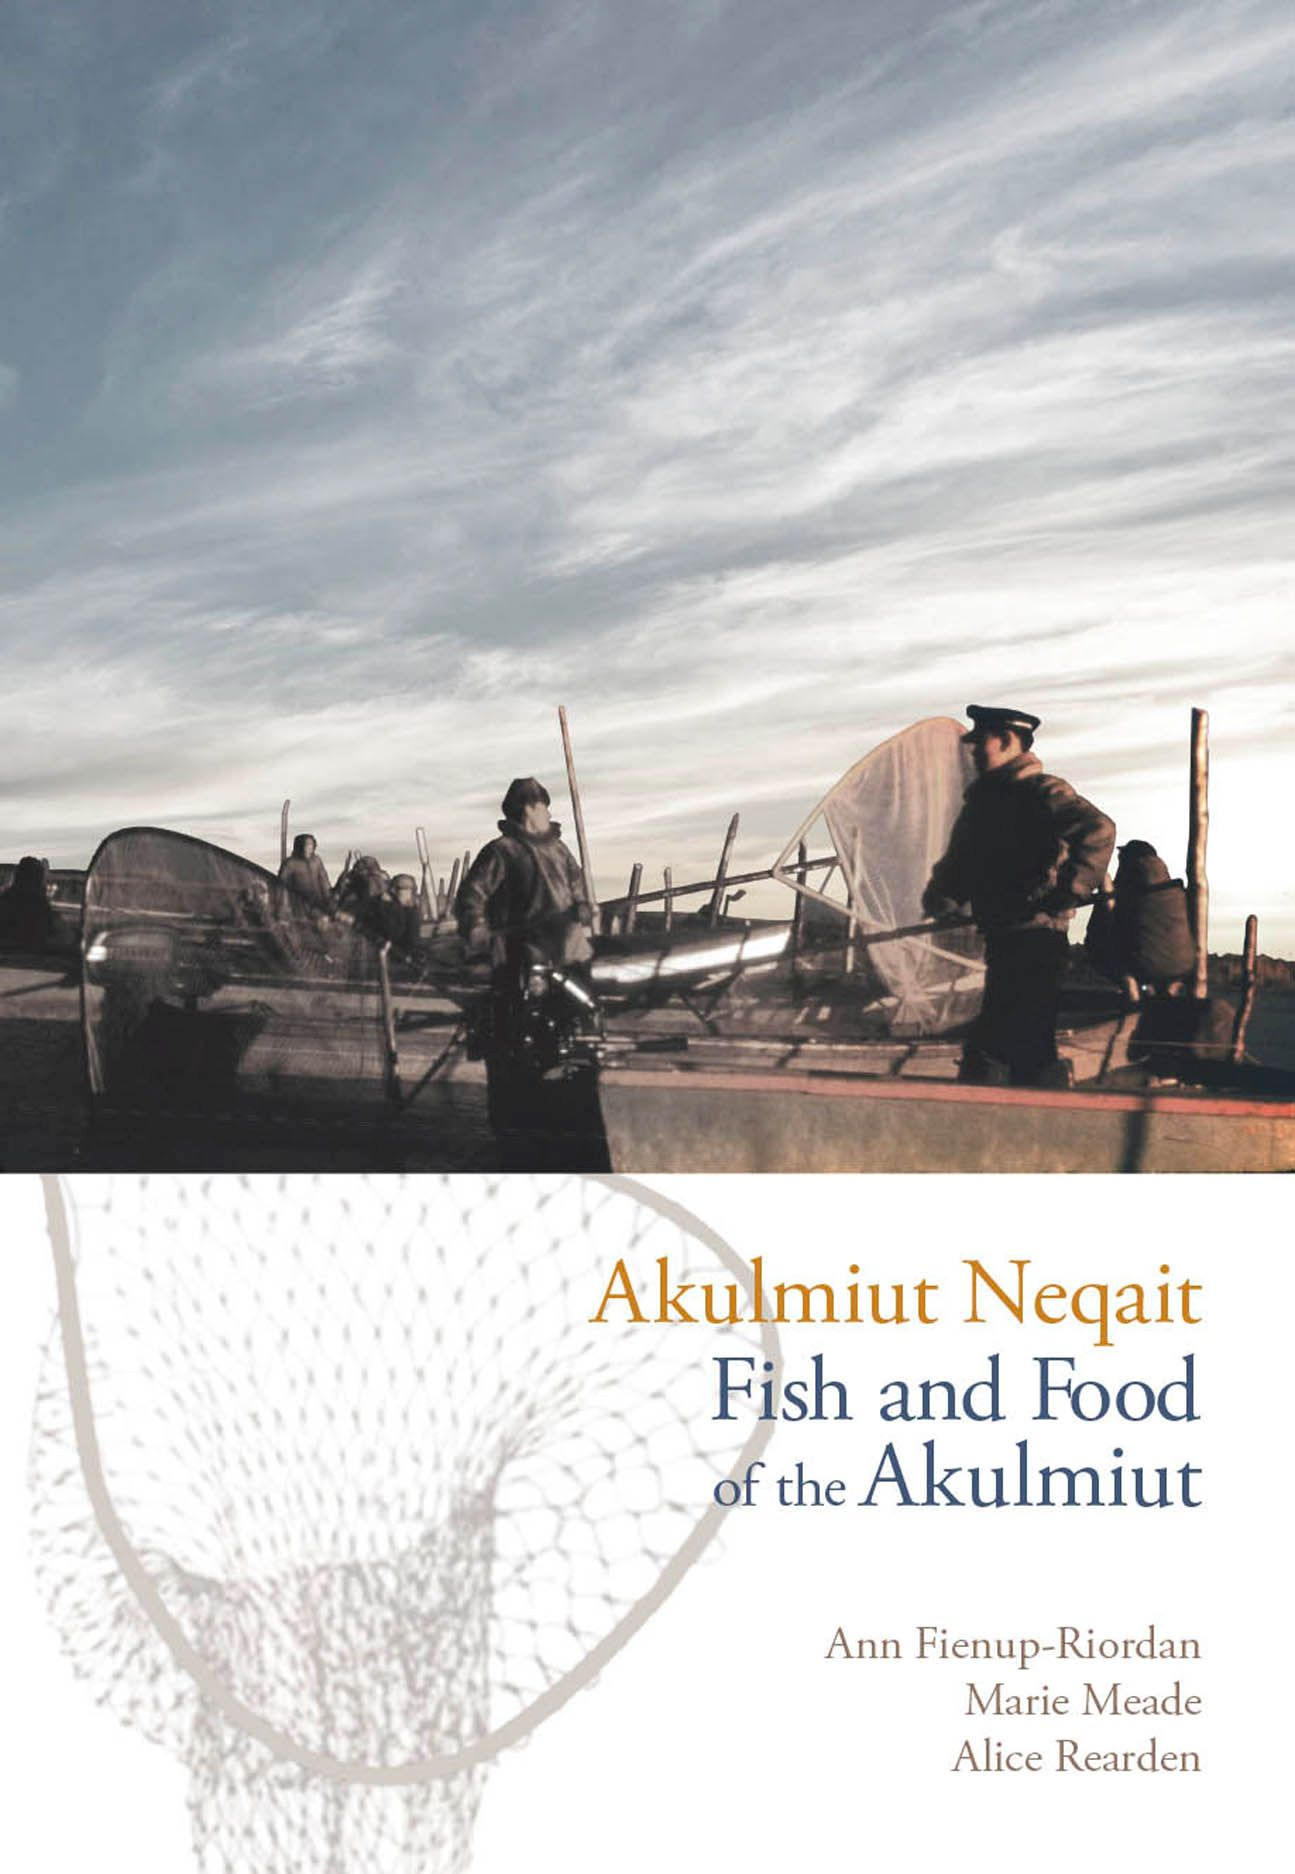 Akulmiut Neqait / Fish and Food of the Akulmiut: Fish and Food of the Akulmiut